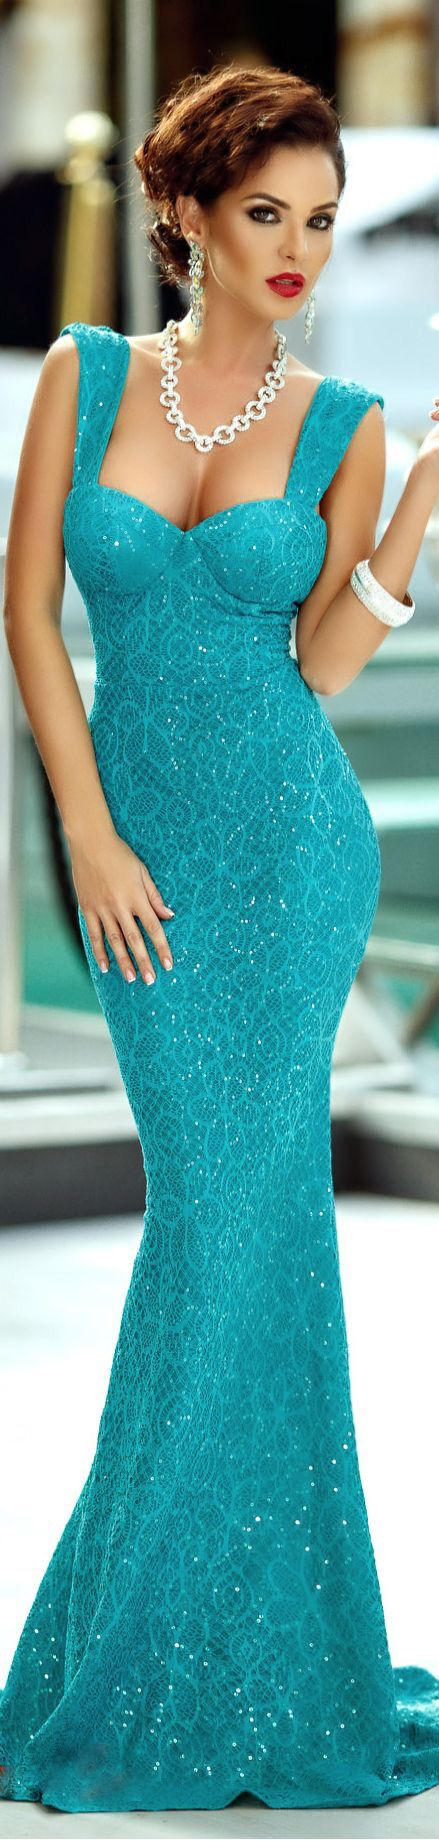 Luxe gown in turquoise luxurycom fashion style pinterest